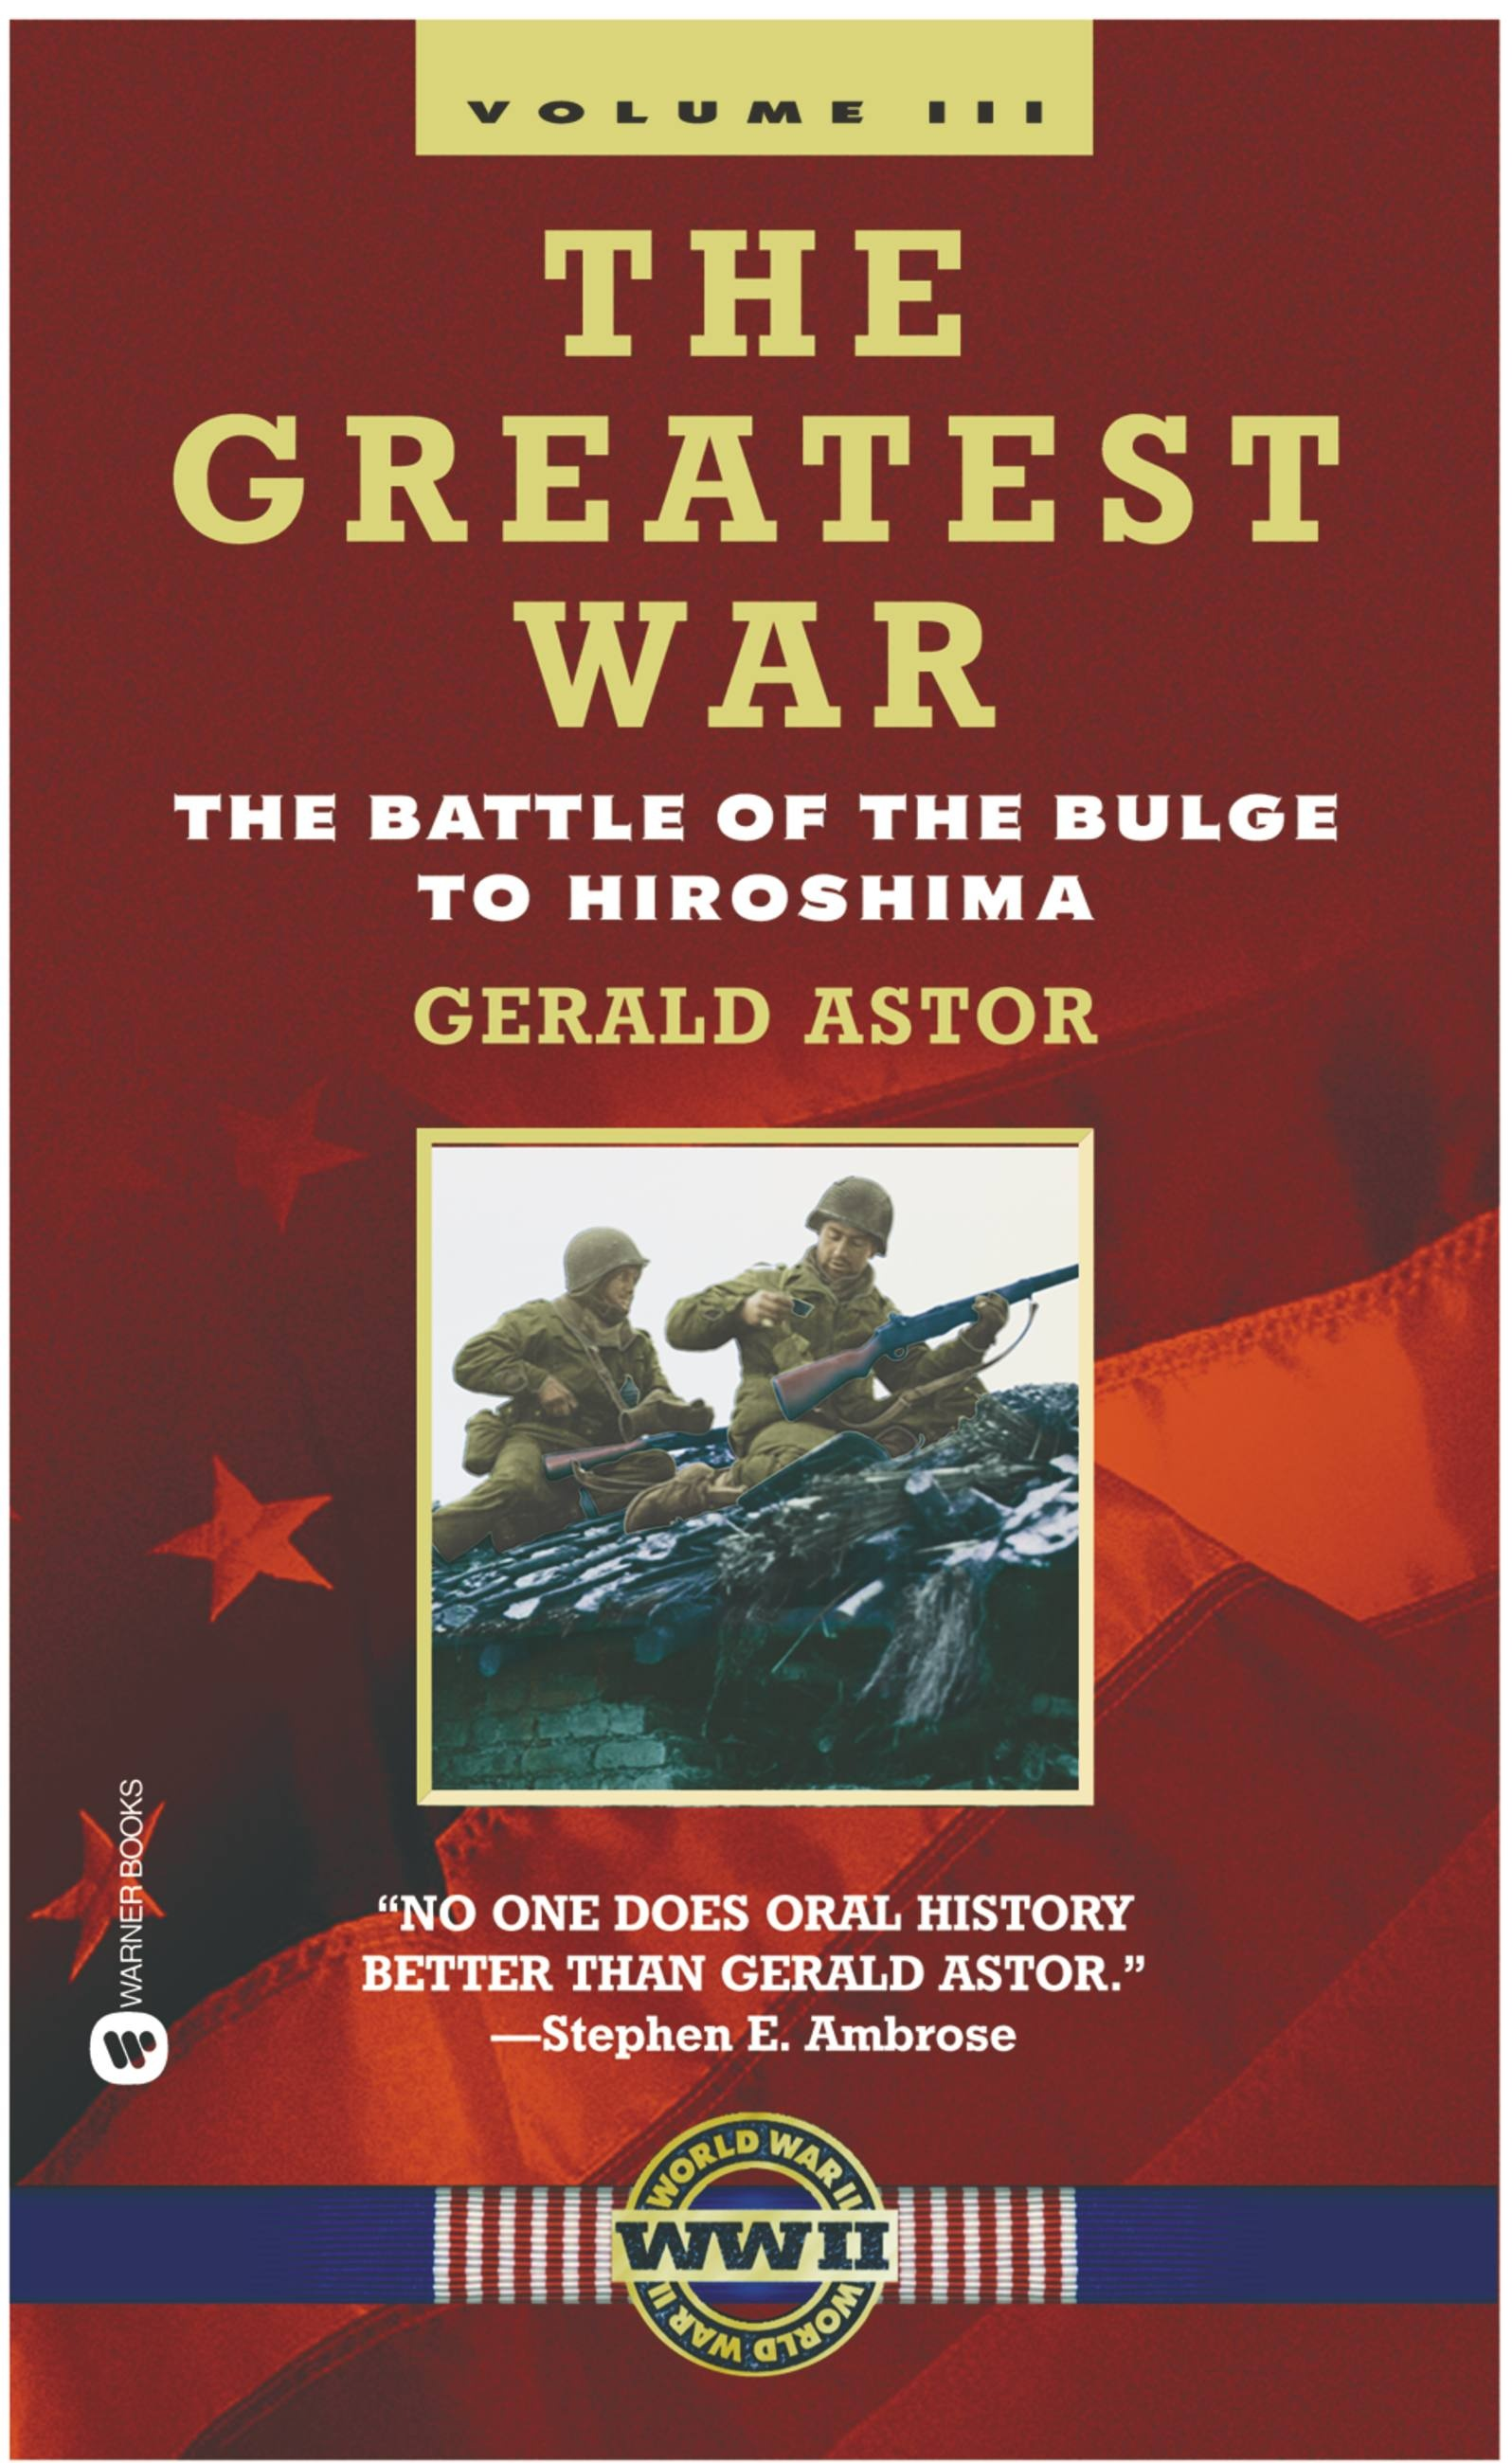 The Greatest War - Volume III